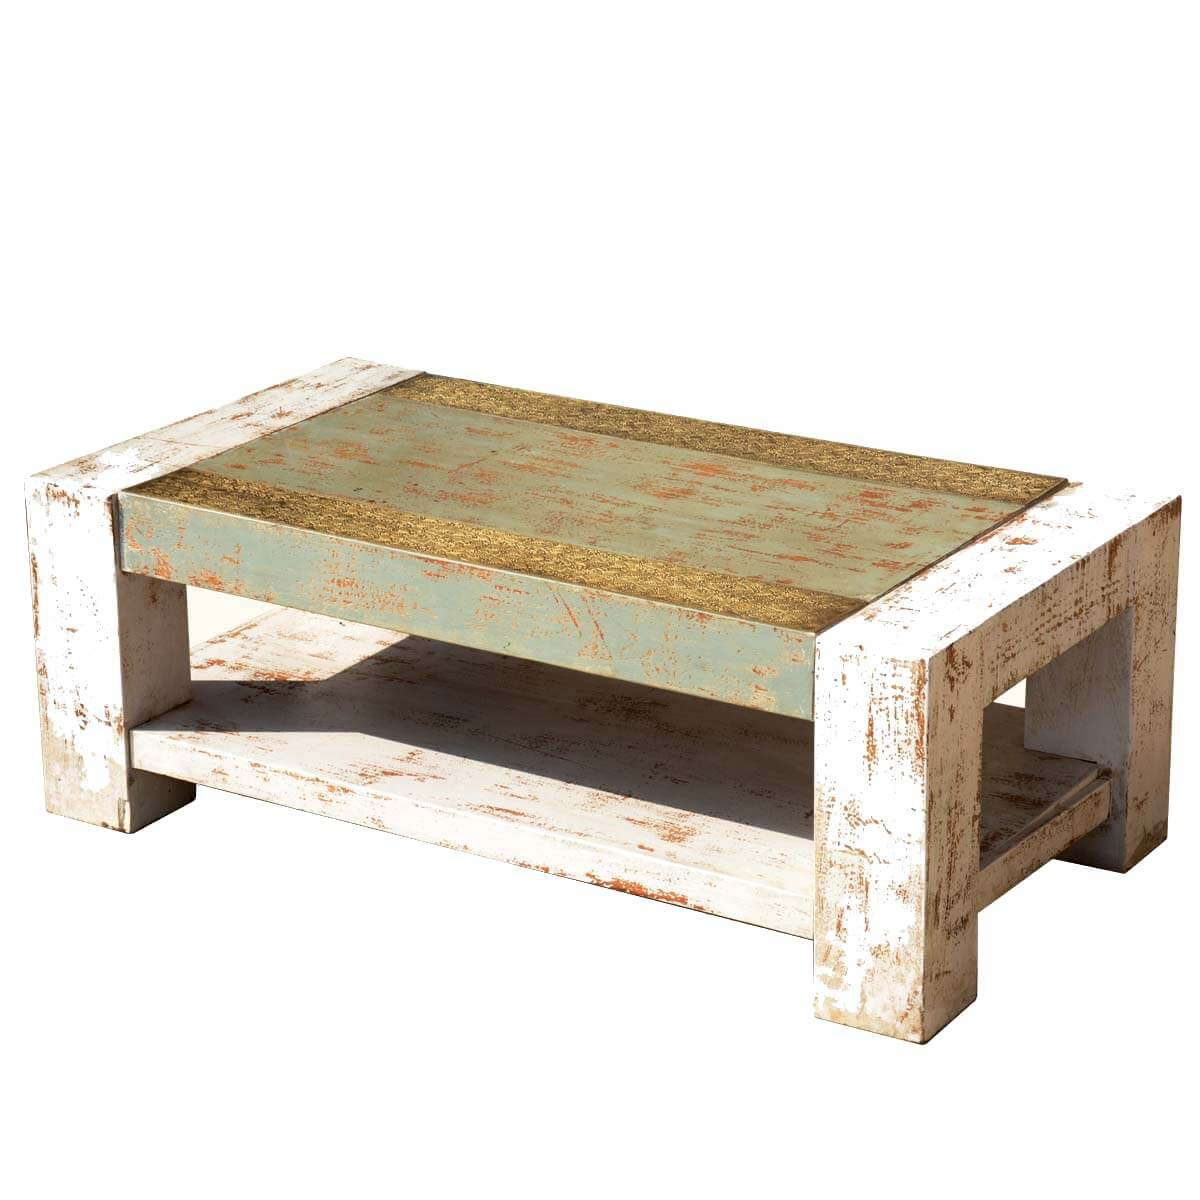 "Large Distressed Wood Coffee Table: Distressed 2-Tier Acacia Wood & Brass 43.5"" Long Coffee Table"